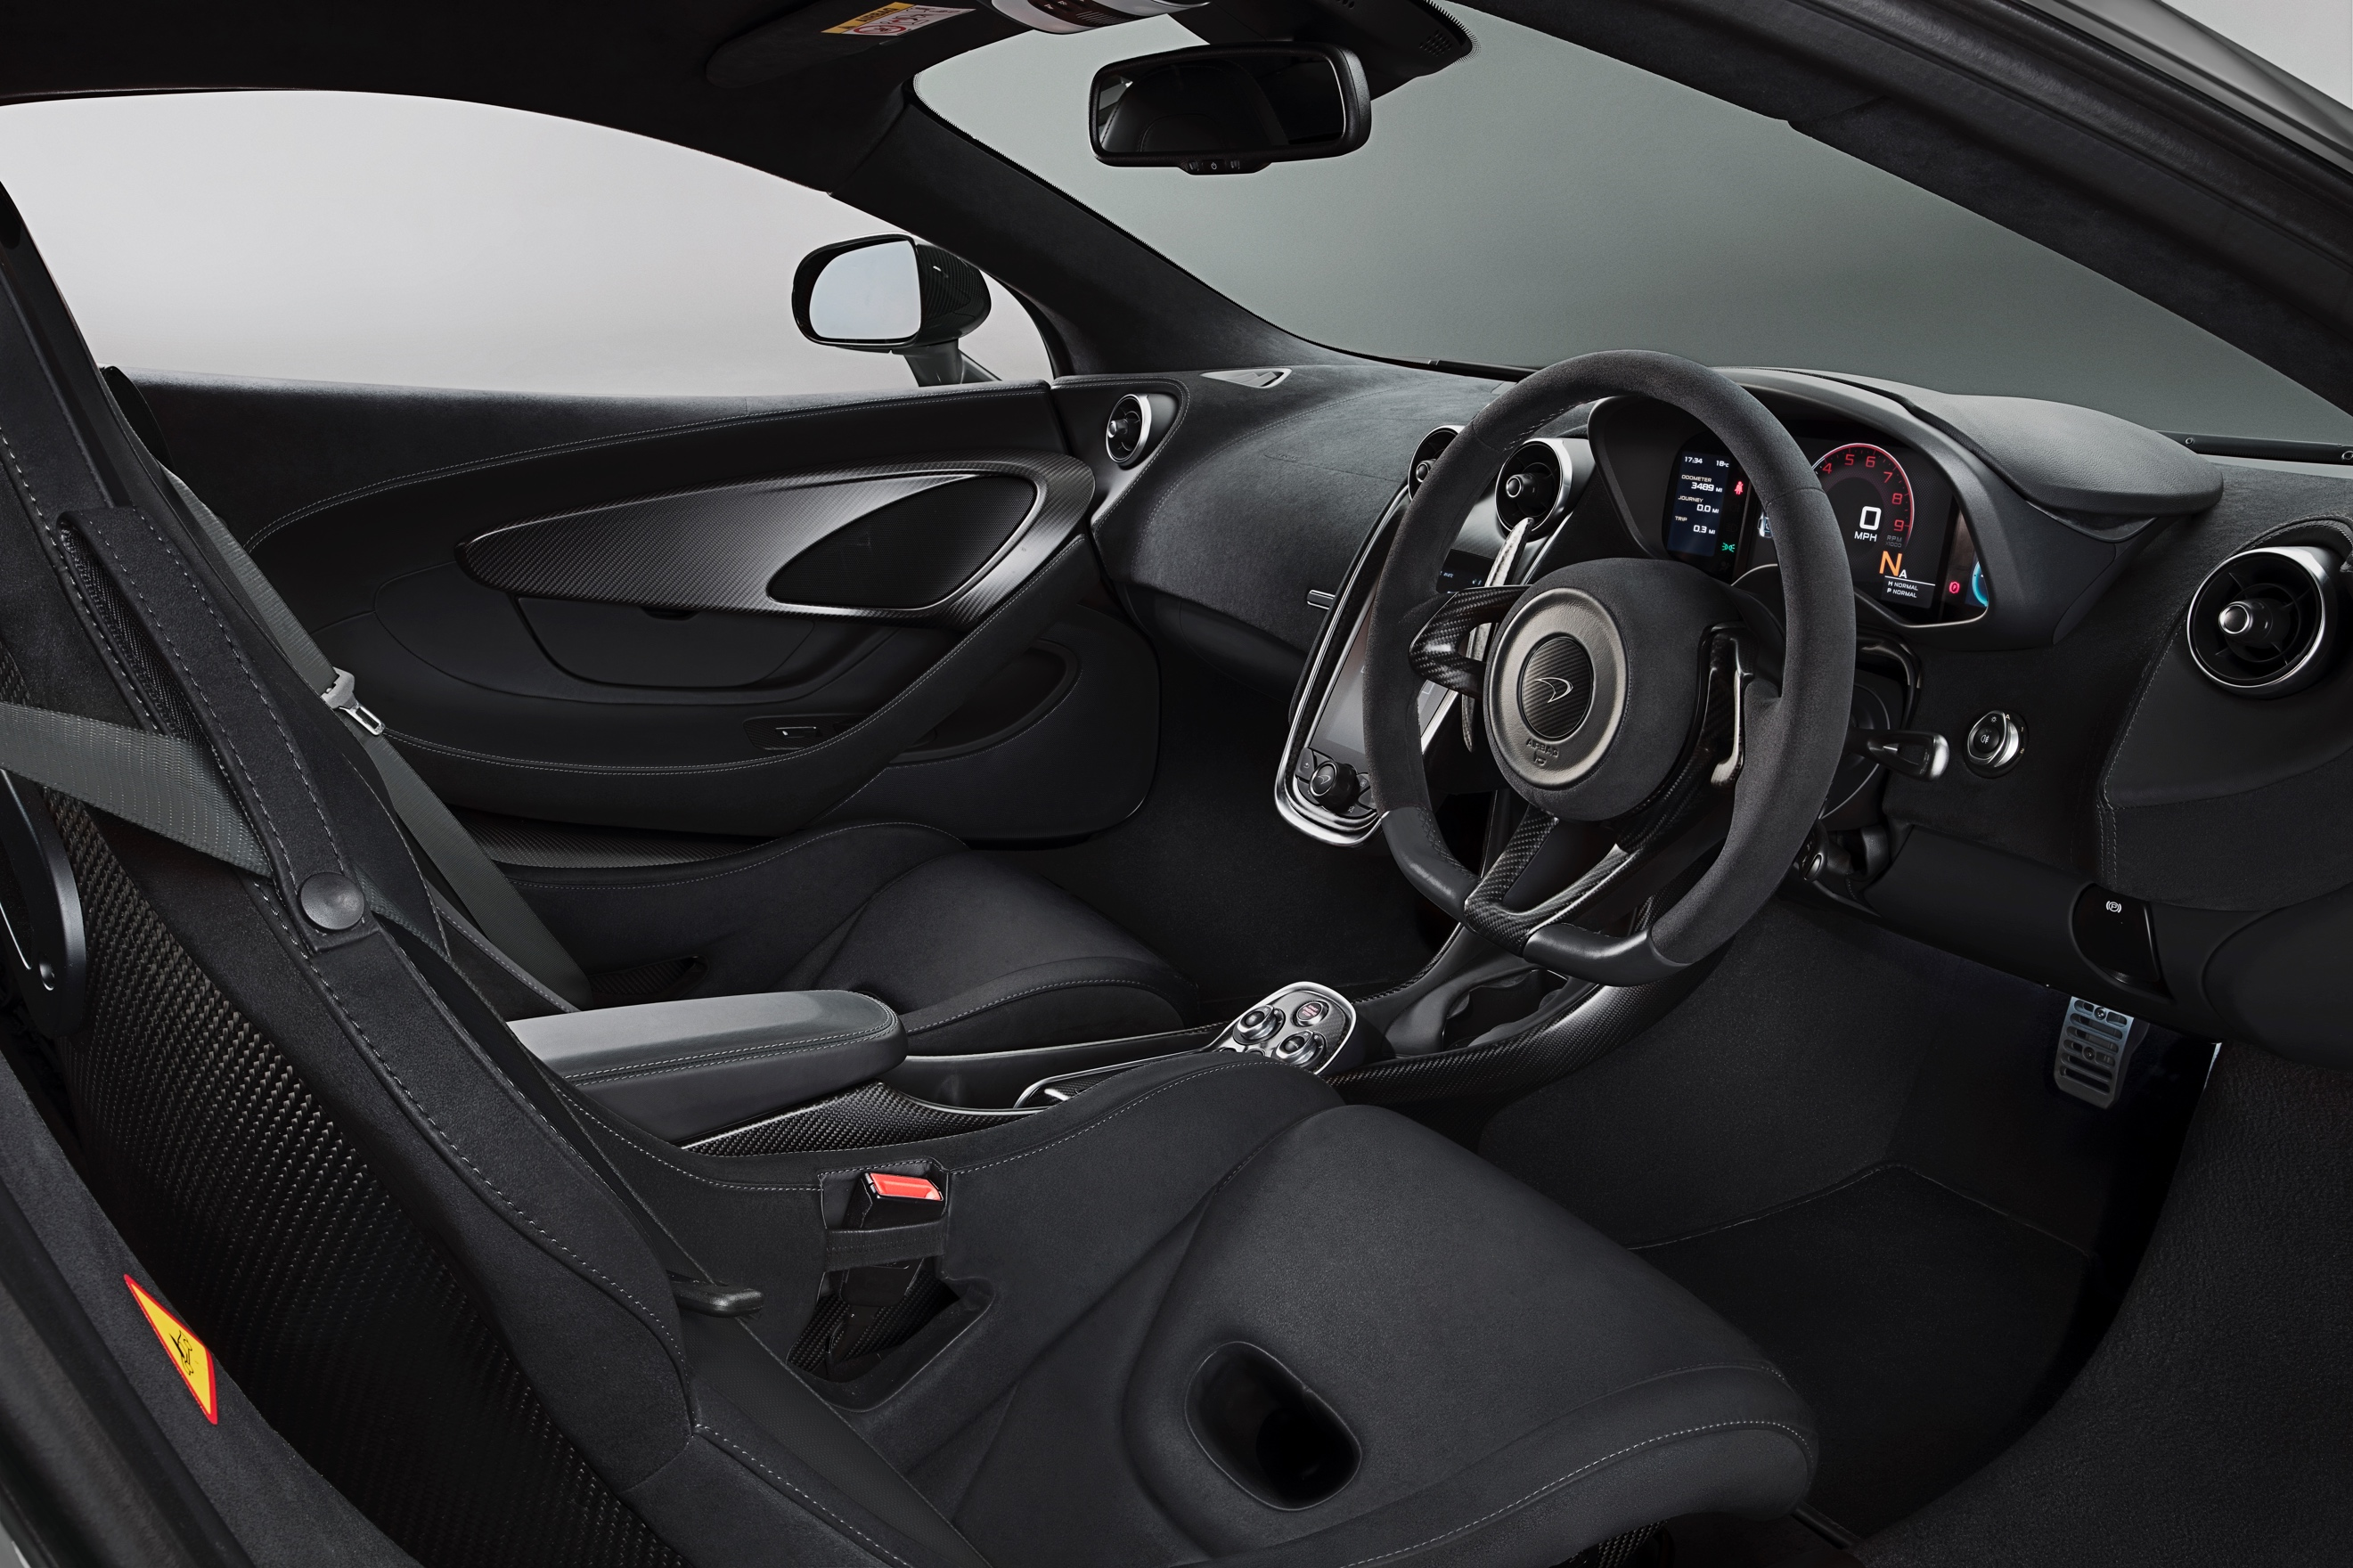 /Users/Kat_Hawke/Dropbox/1A. EBW :: RGR/website/Press Kits/MCL_570s_TrackPack/7327Shot_12_Track_Interior_Alcantara.jpg